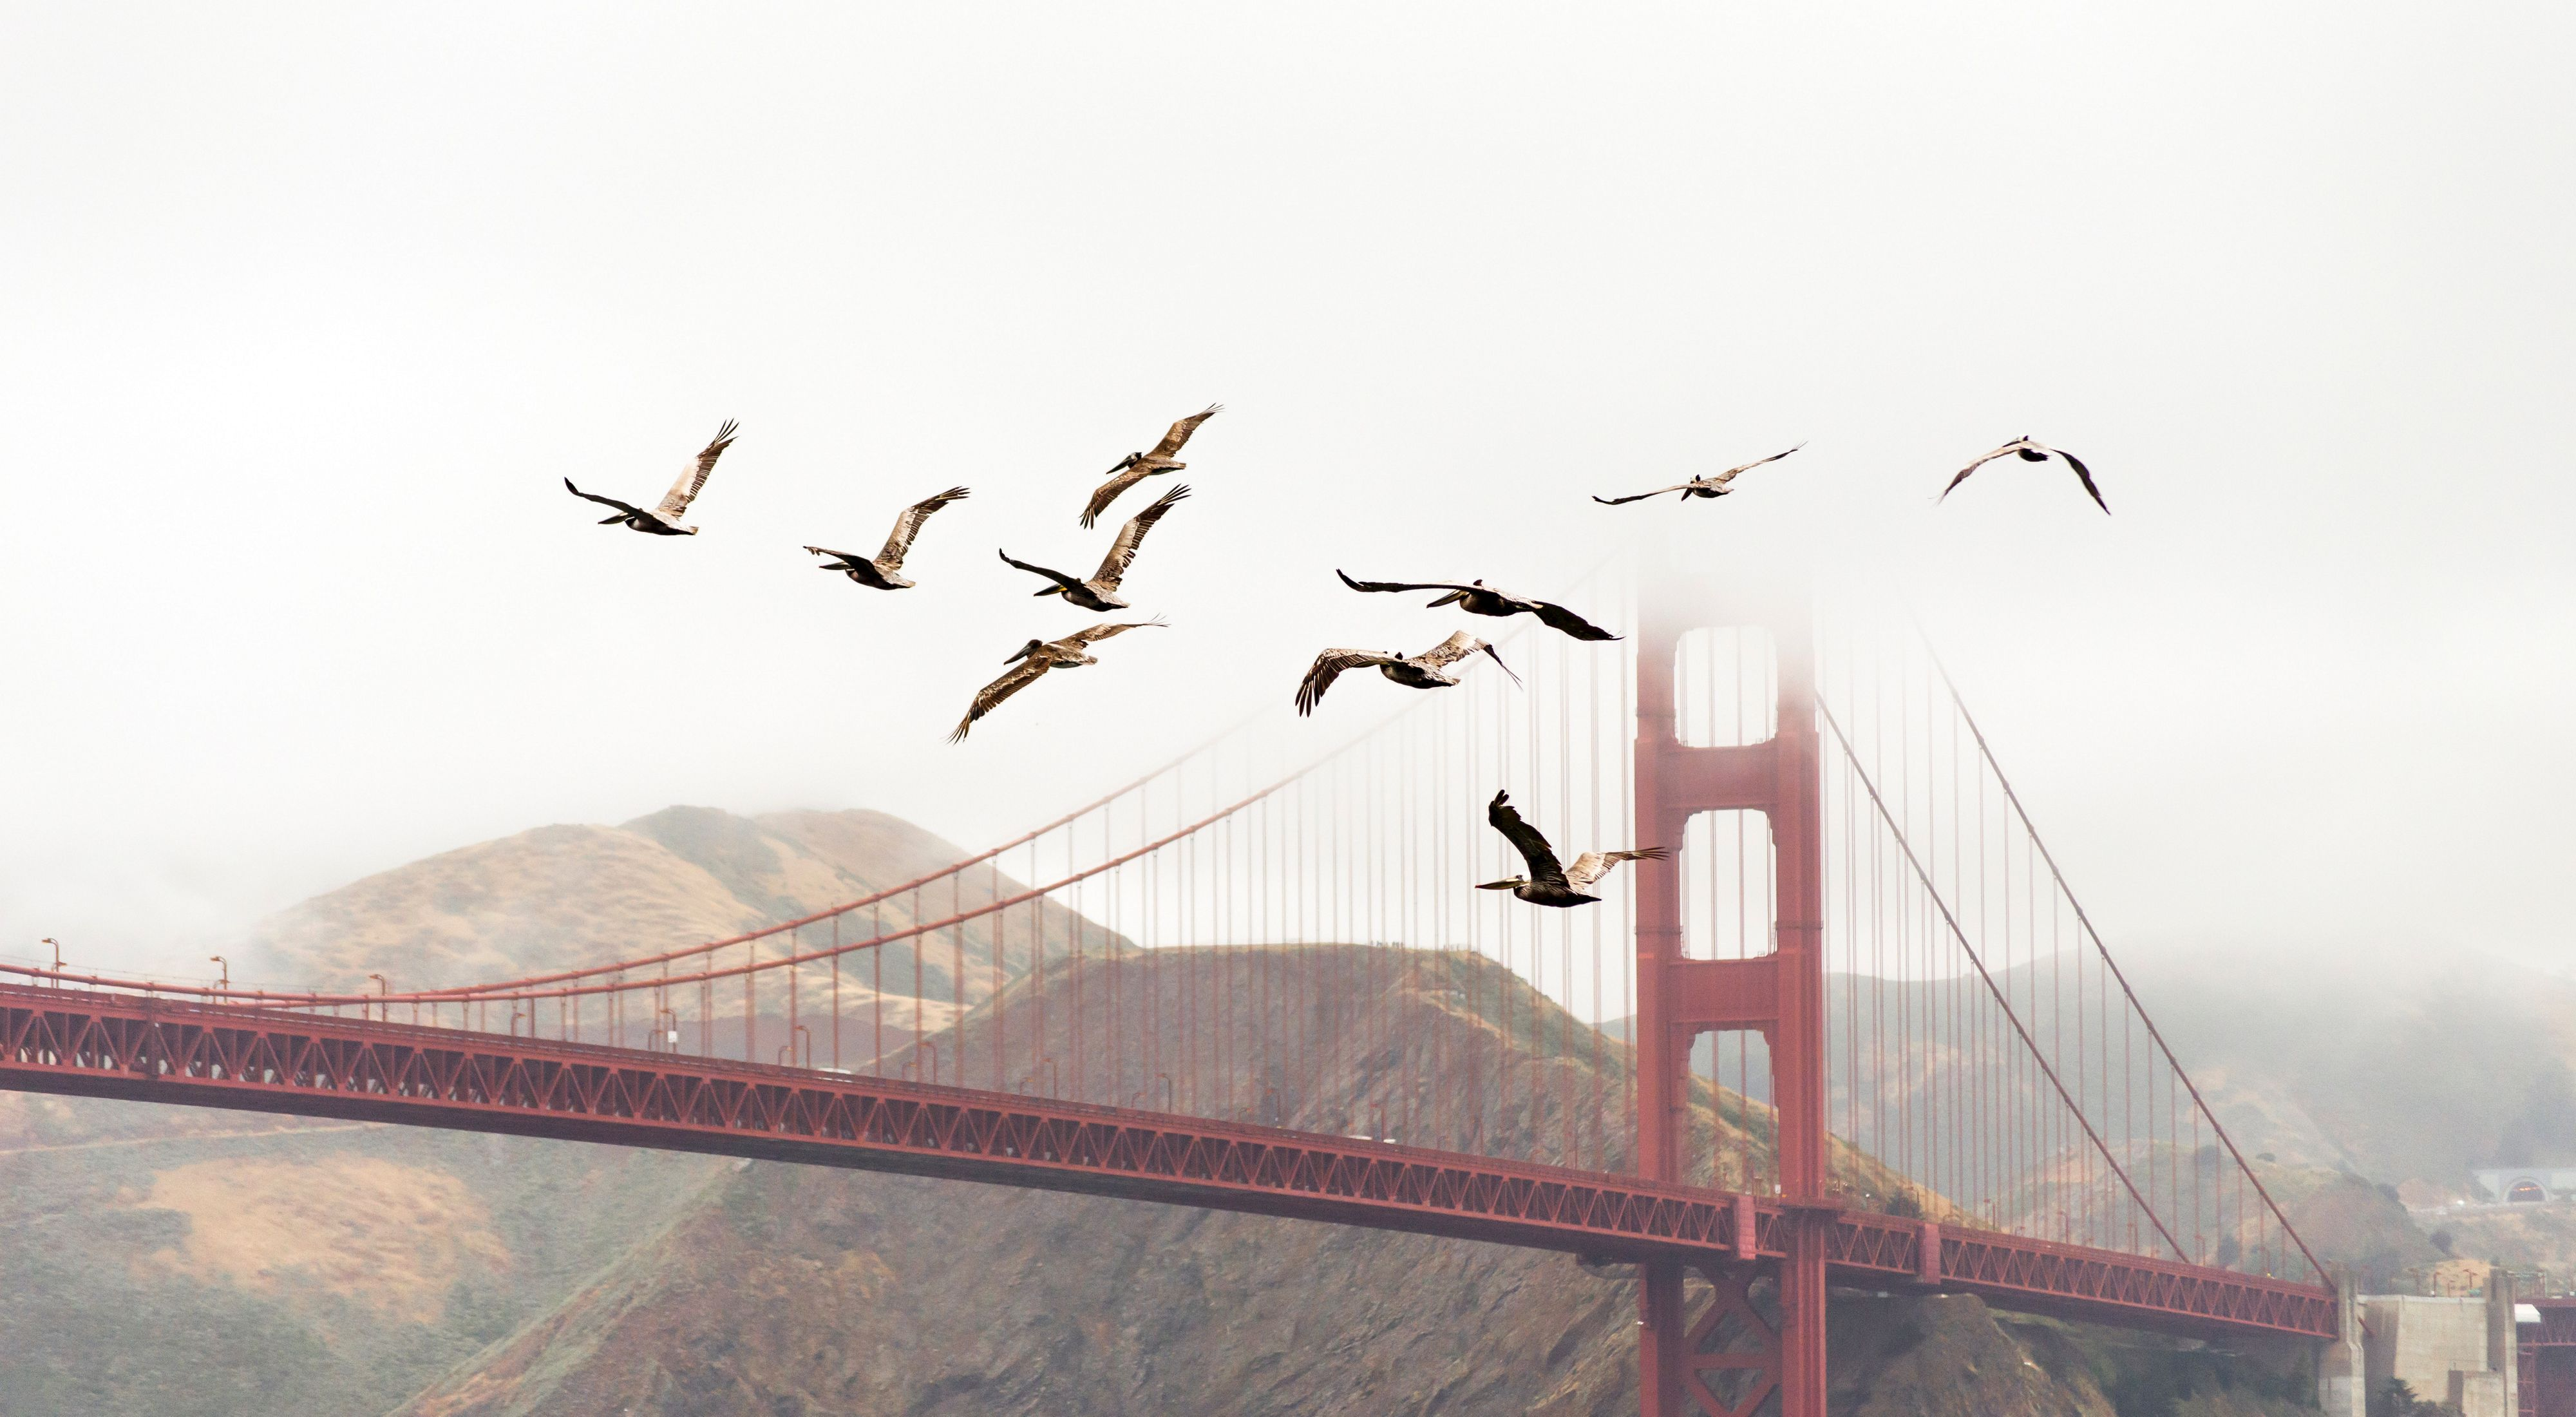 Birds fly past the Golden Gate Bridge